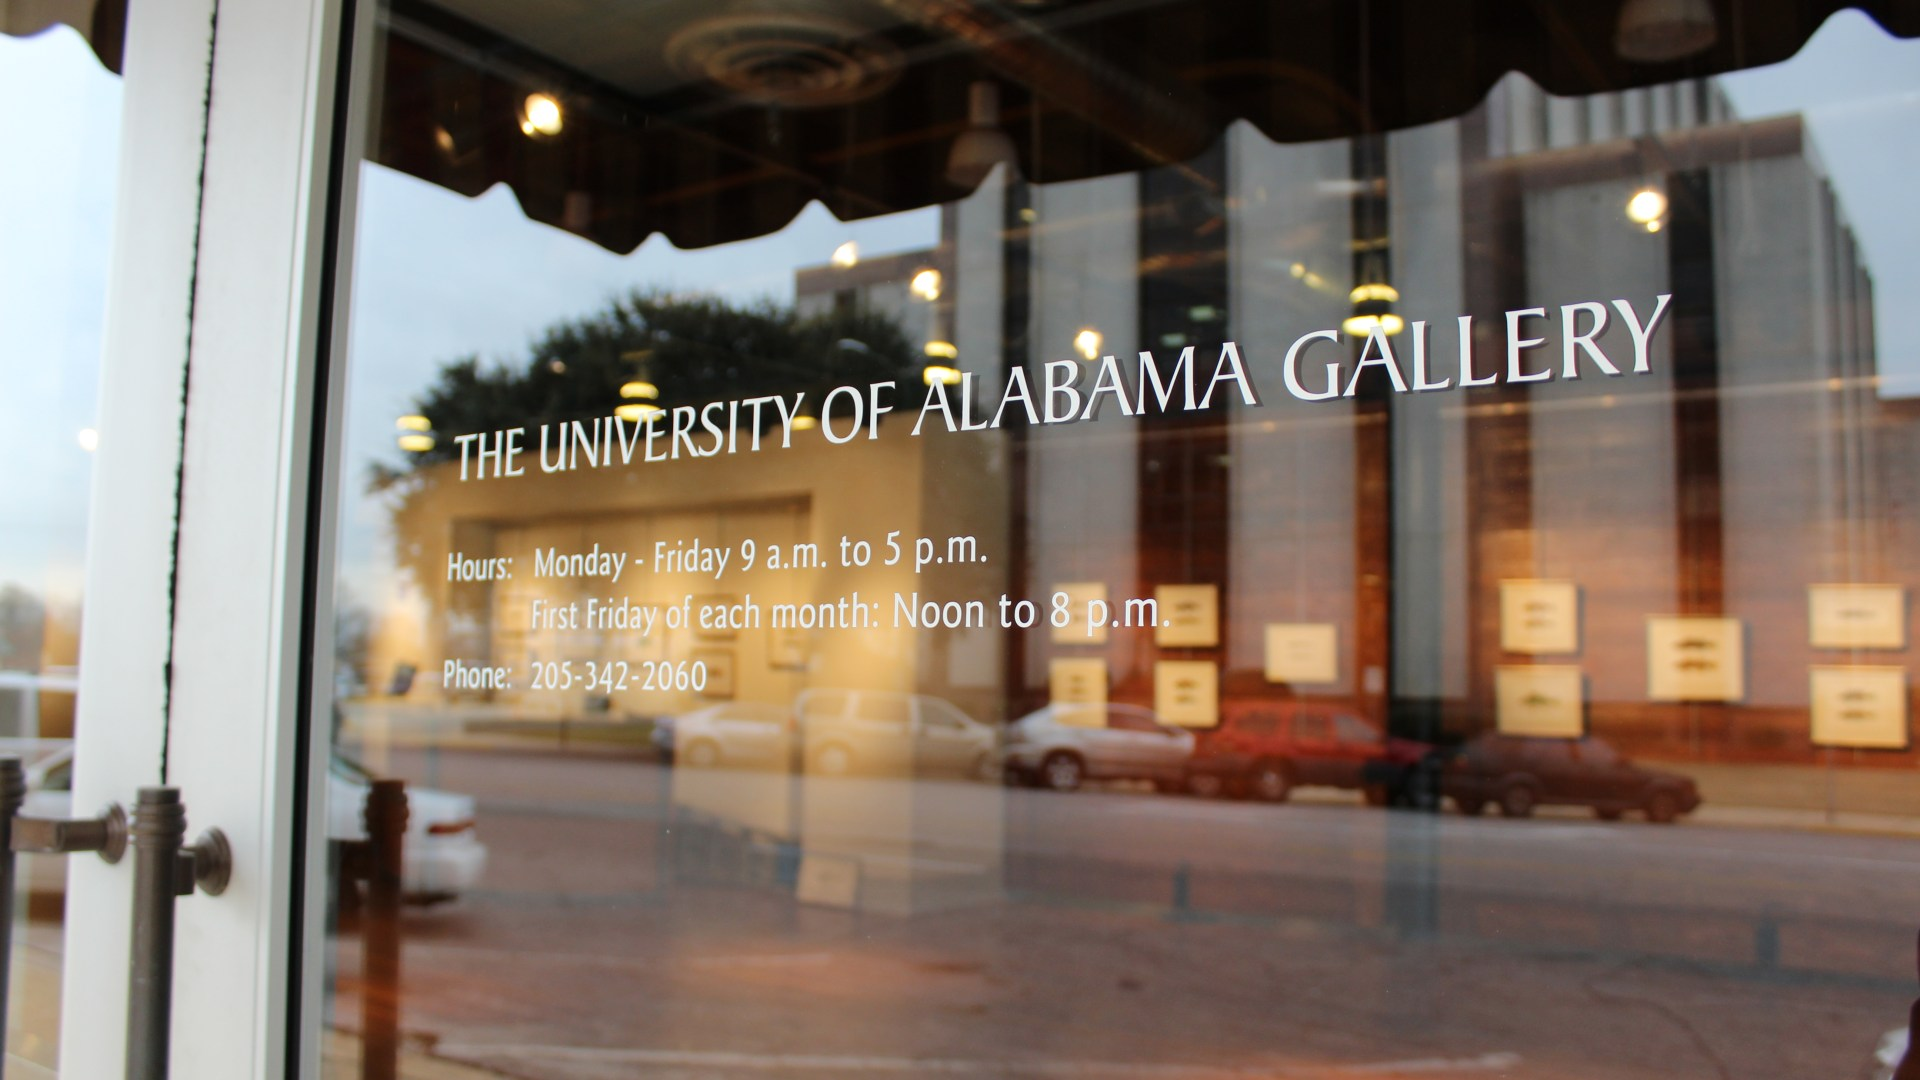 Welcome to the University of Alabama Gallery